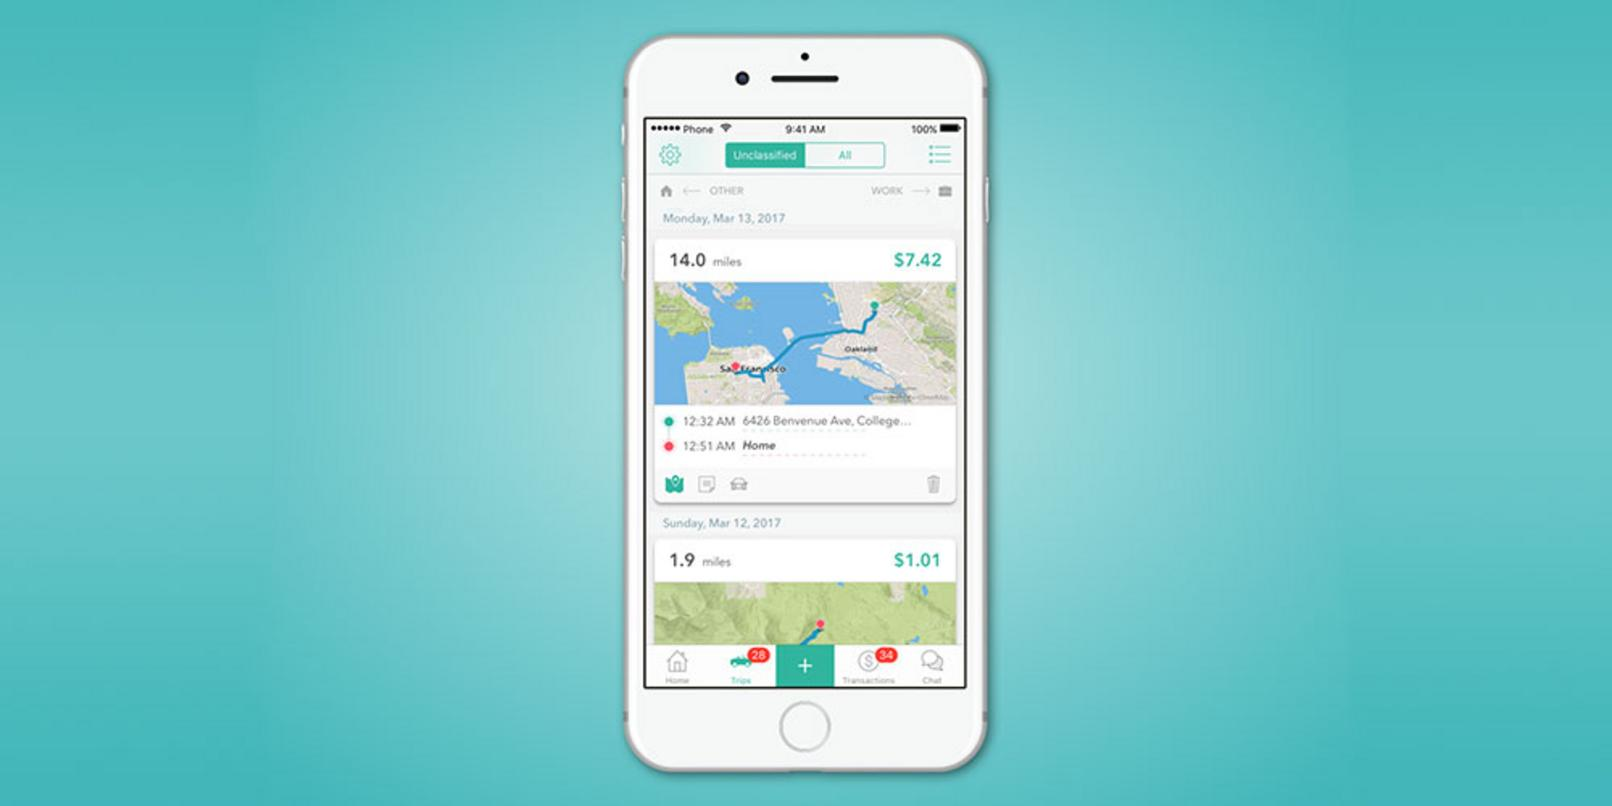 Dump paper receipts forever with this easy expense-travel tracker